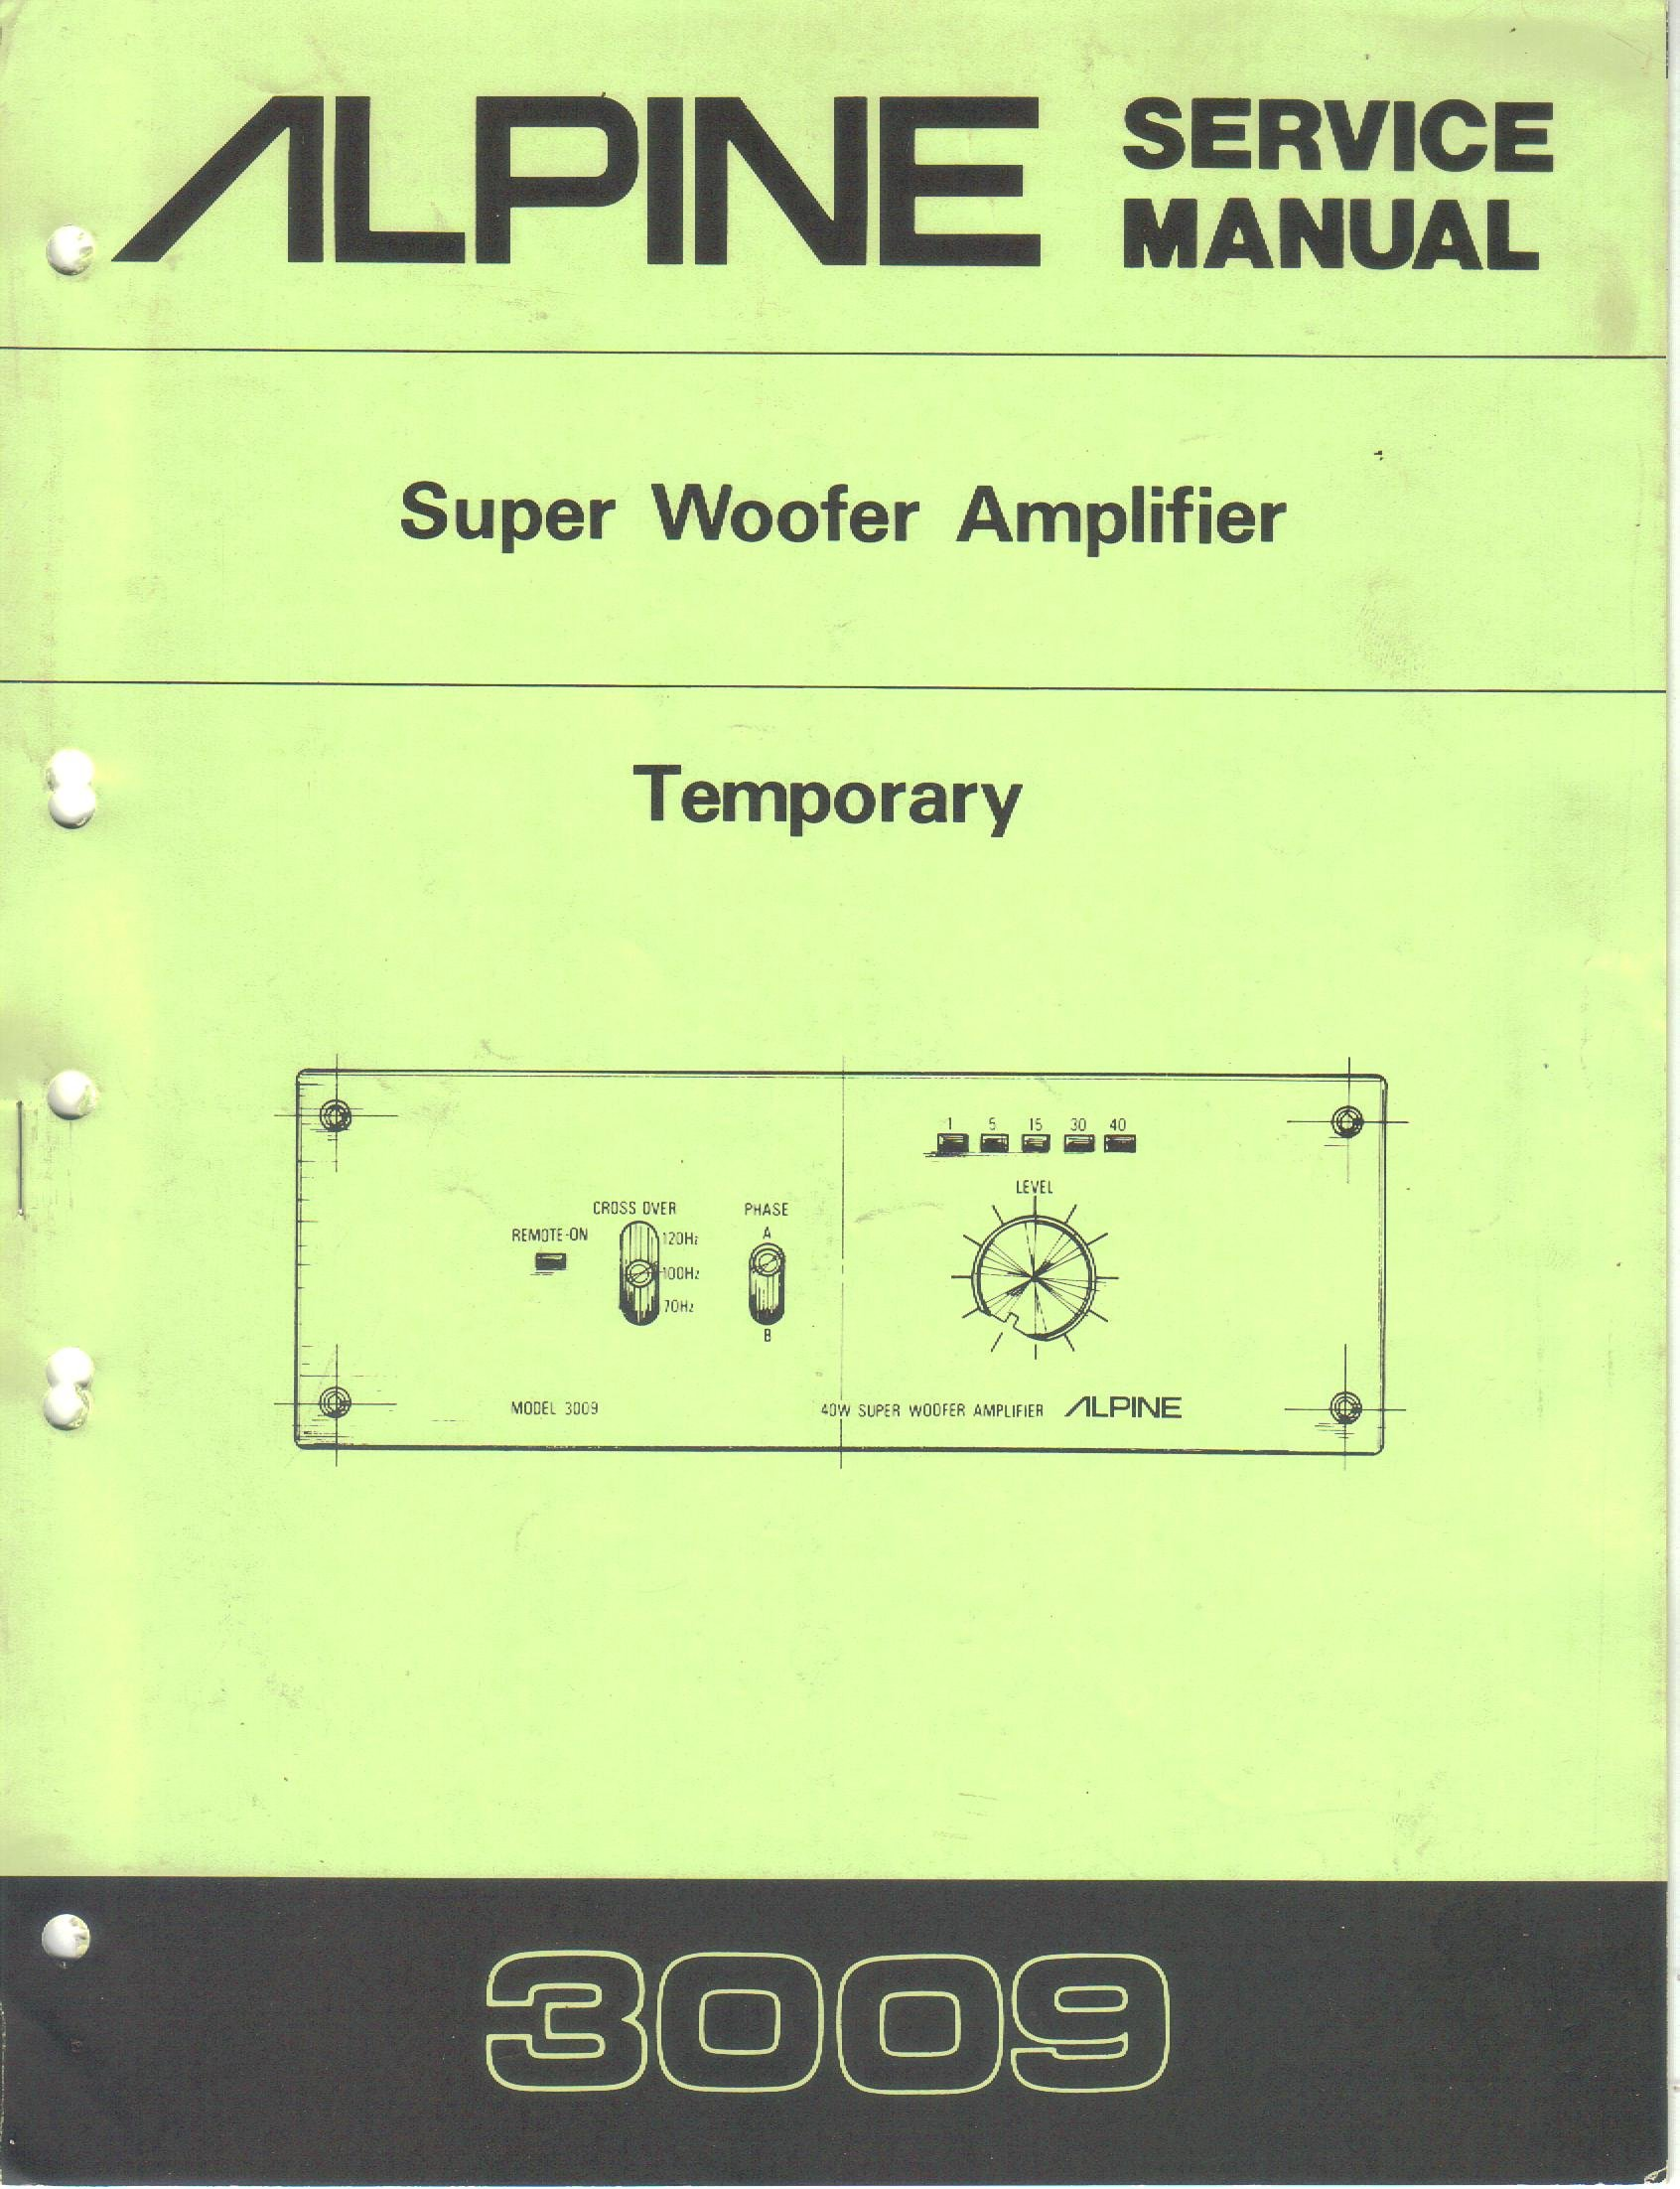 service wiring diagram alpine 3009 super woofer amplifier  temporary service manual service entrance panel wiring diagram alpine 3009 super woofer amplifier